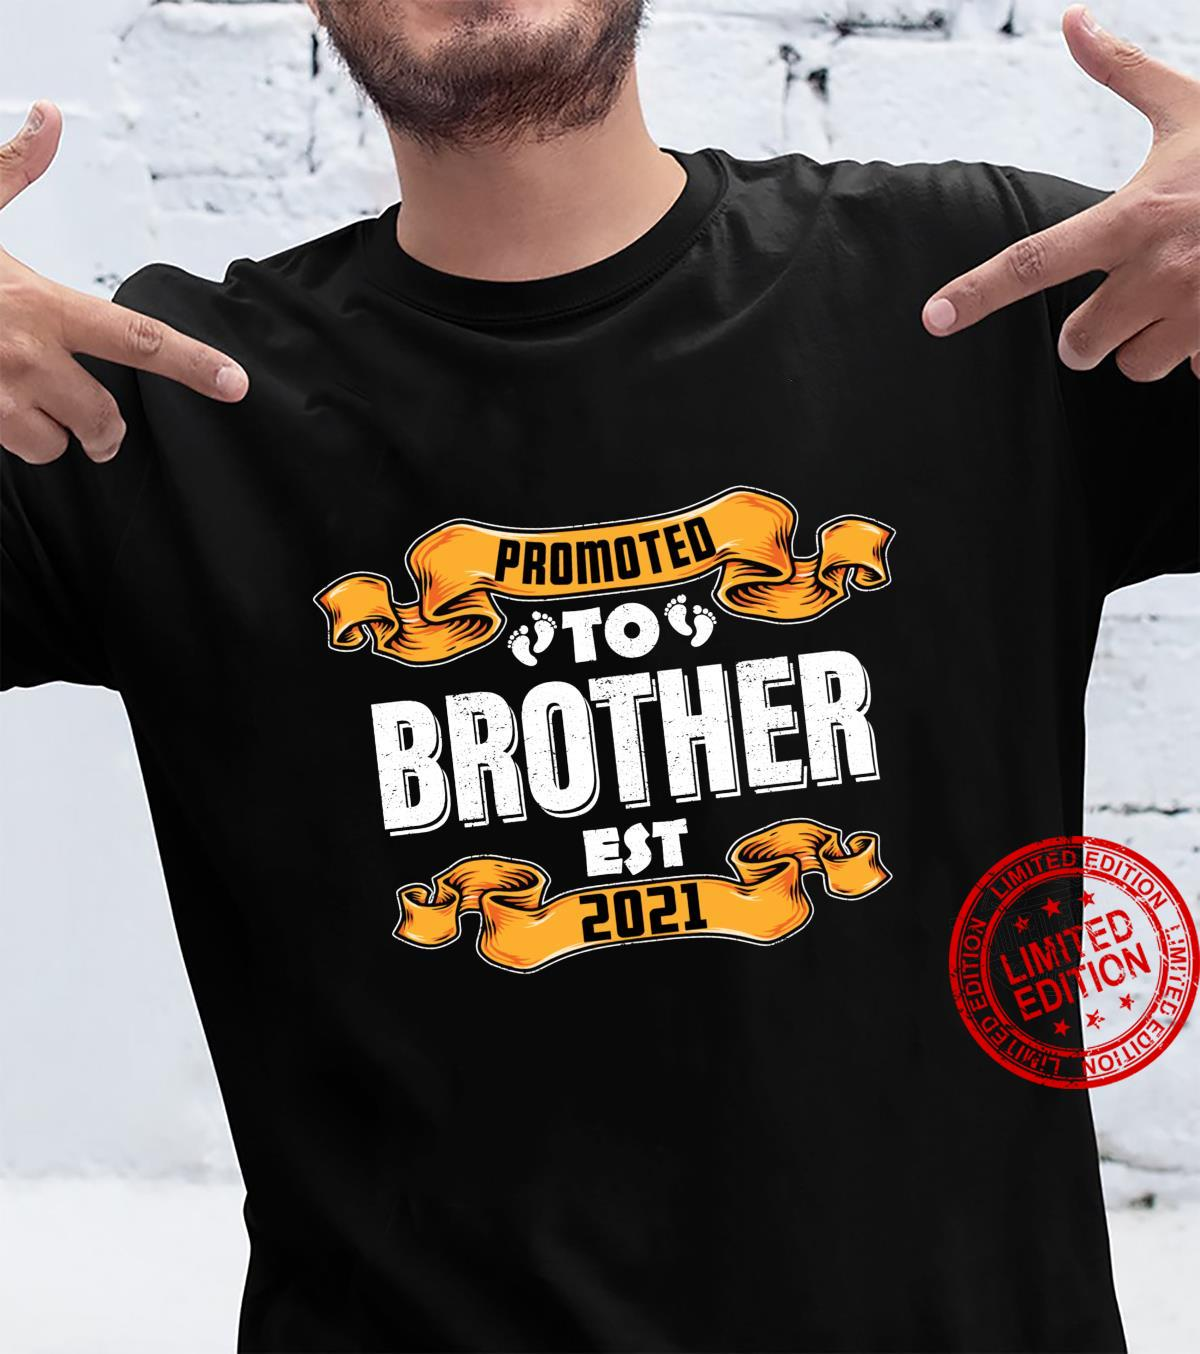 Promoted to Brother Est 2021 New Baby Reveal Shirt